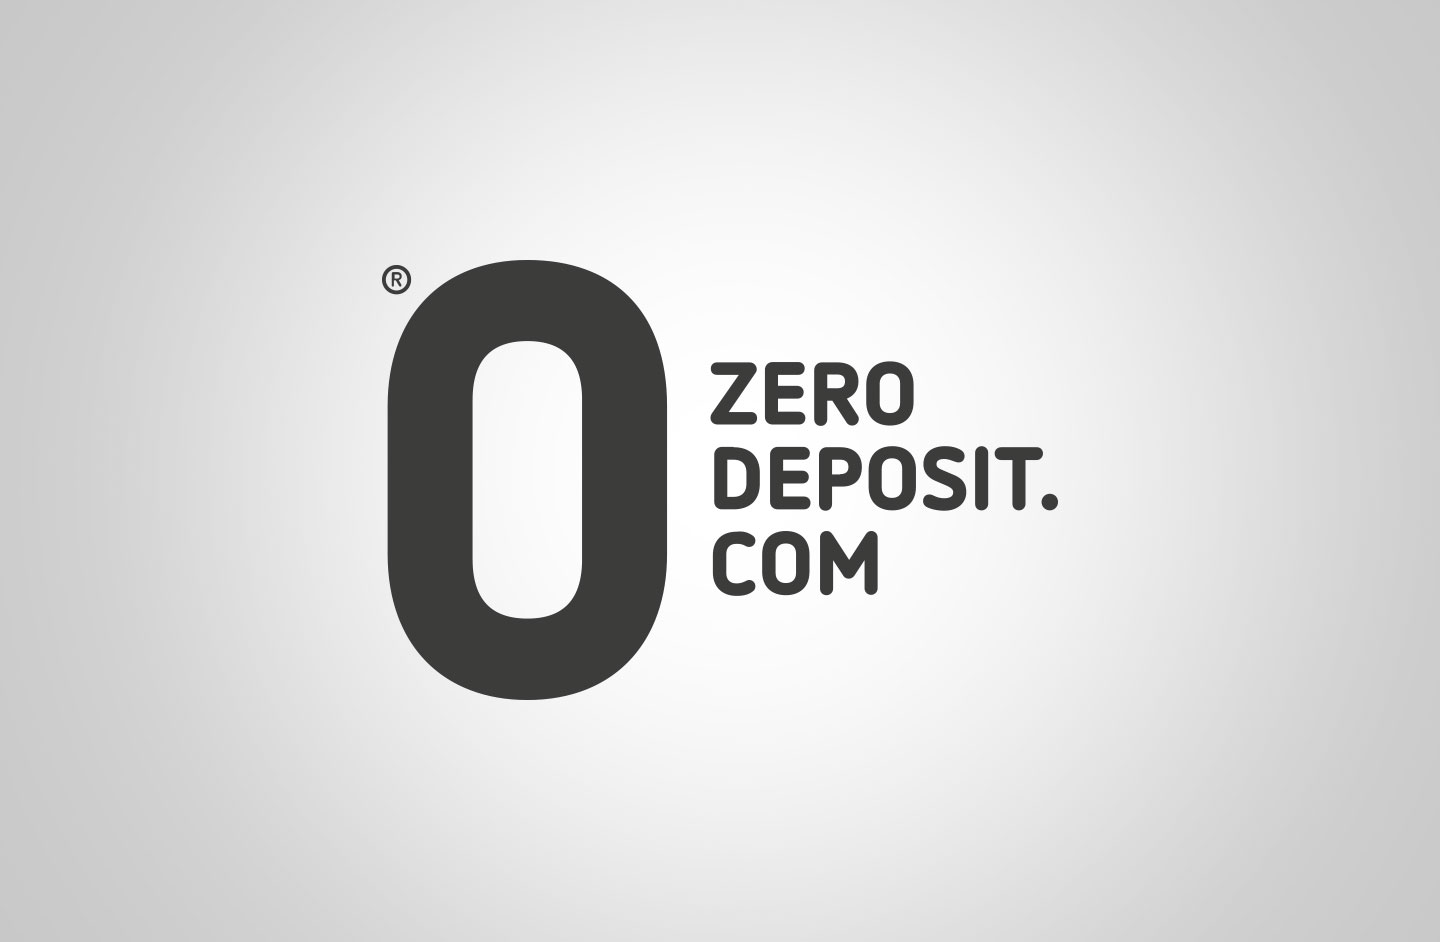 What are the Advantages of Using Zero Deposit Instead of a Traditional Deposit Scheme?